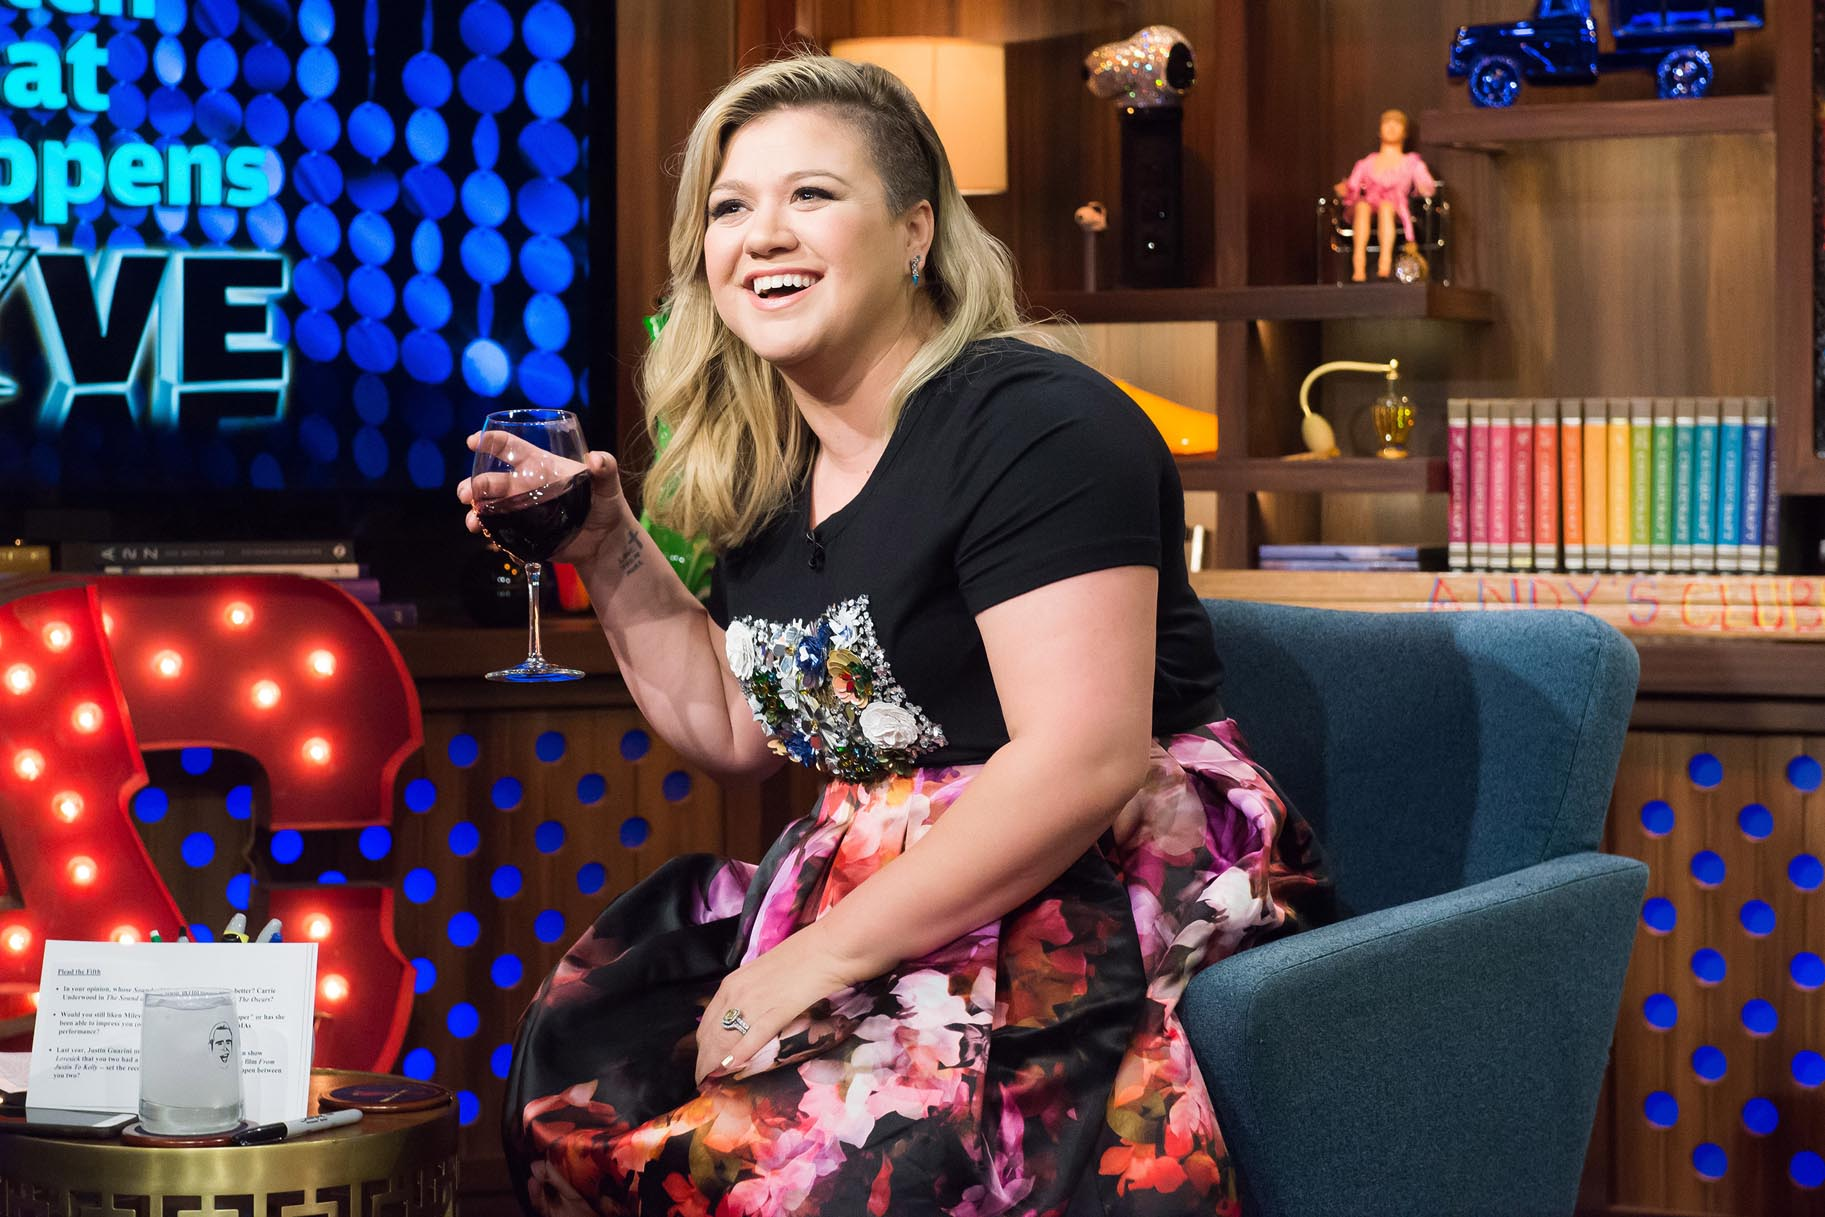 Congratulate, kelly clarkson midget was and